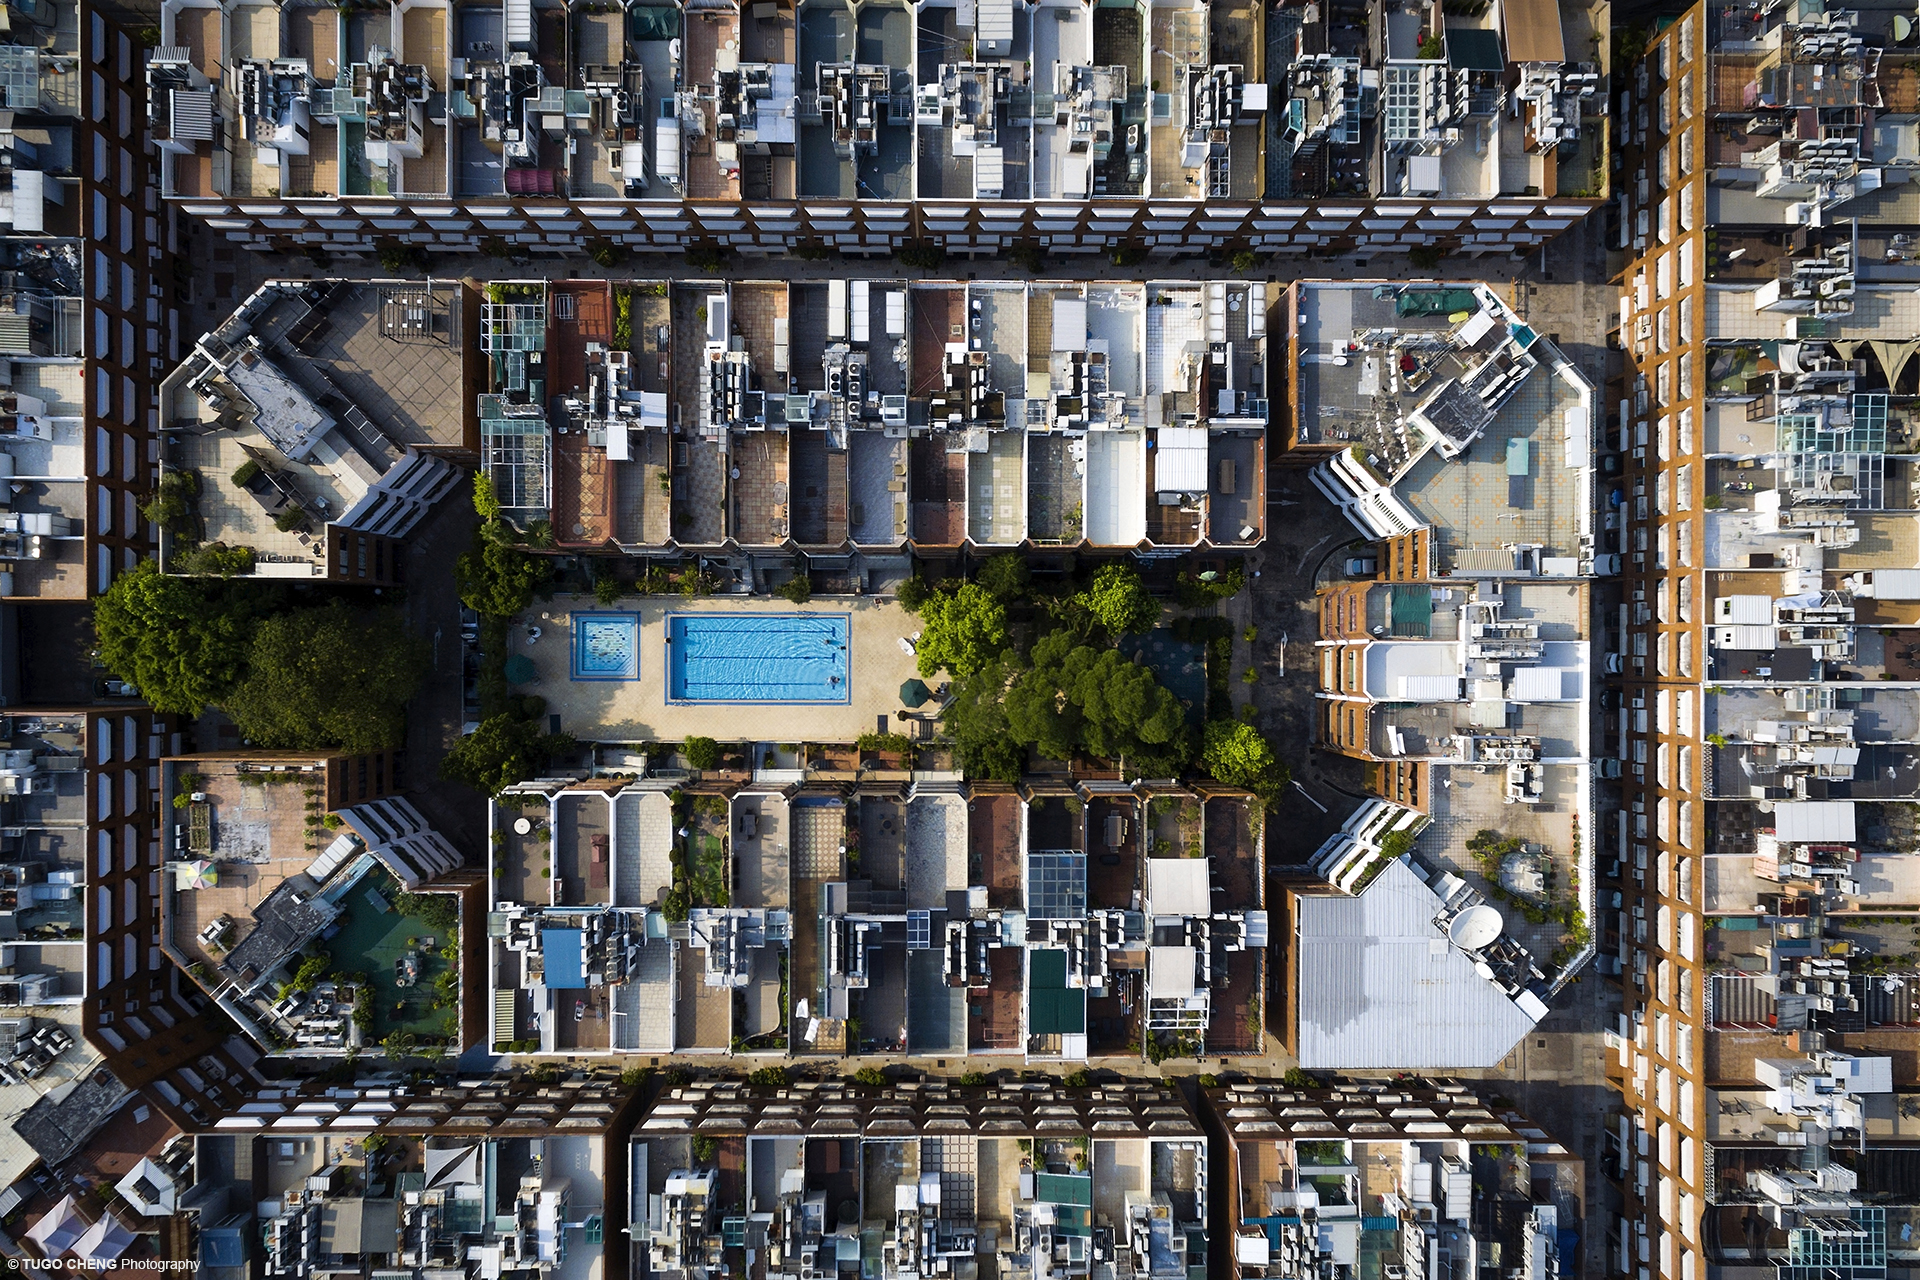 City Patterns #5_Luxurious density.jpg